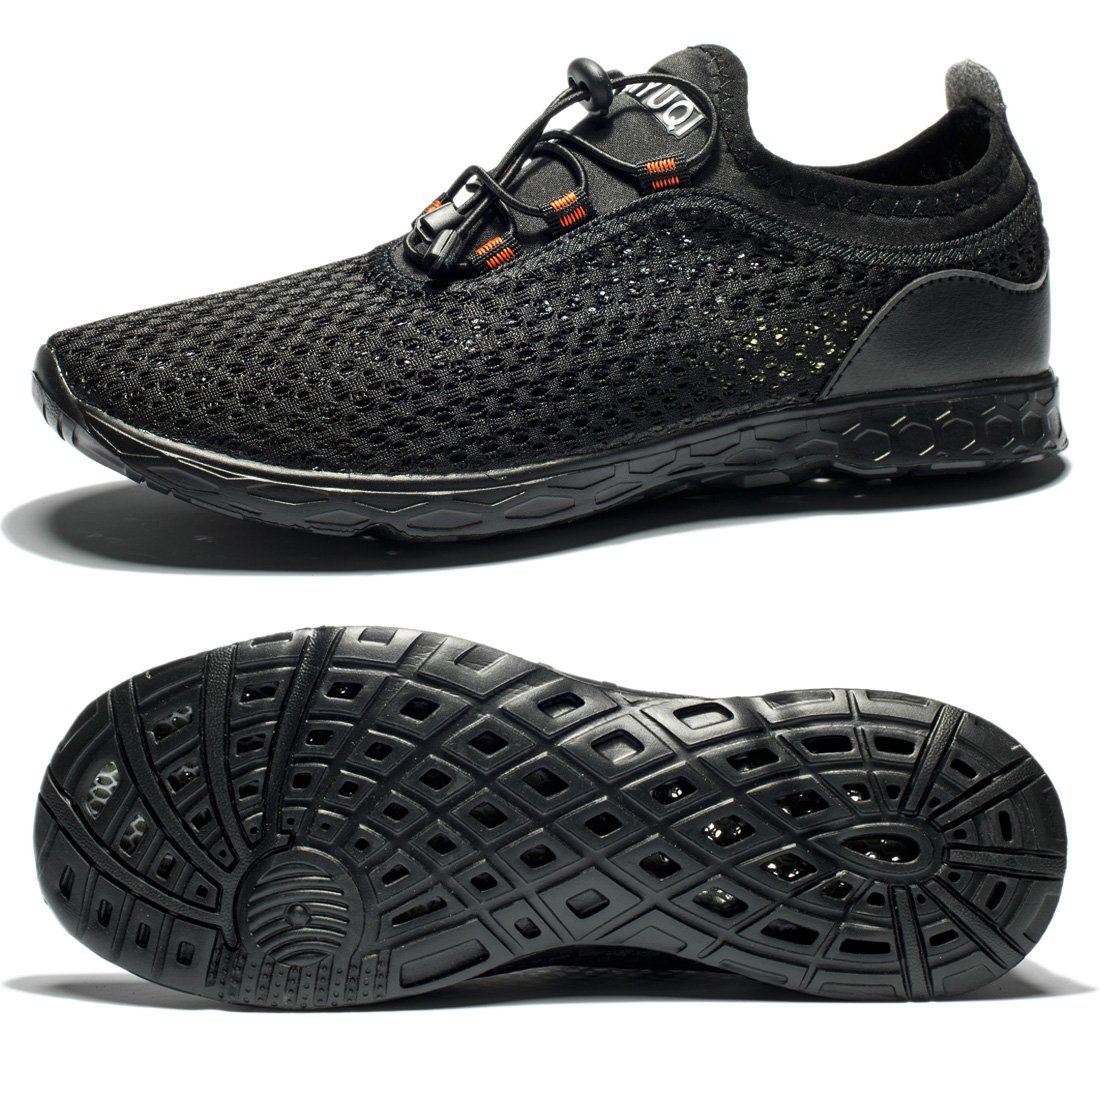 64d906ddc85c Alibress Unisex Water Shoes-Black Quick Dry Sports Aqua Shoes Lightweight  for Swimming Yoga Beach Driving Boating Pool Exercise  Amazon.ca  Shoes    Handbags